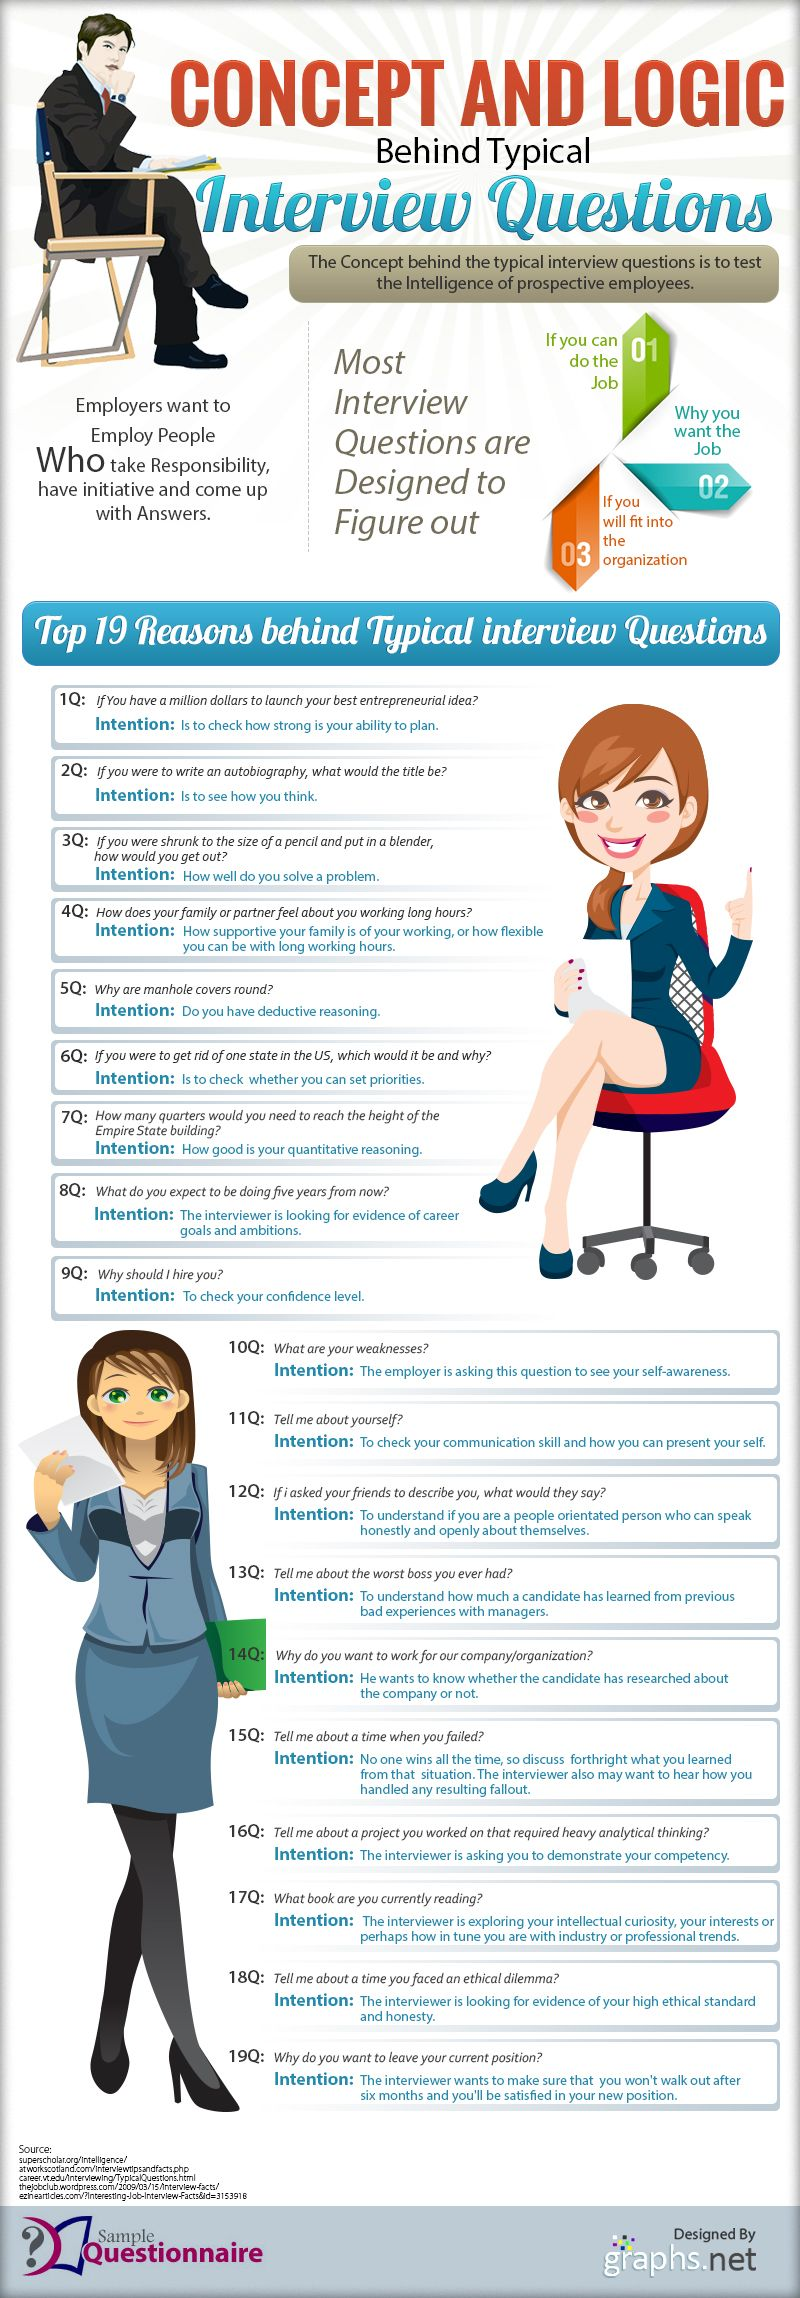 common healthcare interview questions best online resume builder 5 common healthcare interview questions 5 common healthcare interview questions practice interview questions behavioral interview and